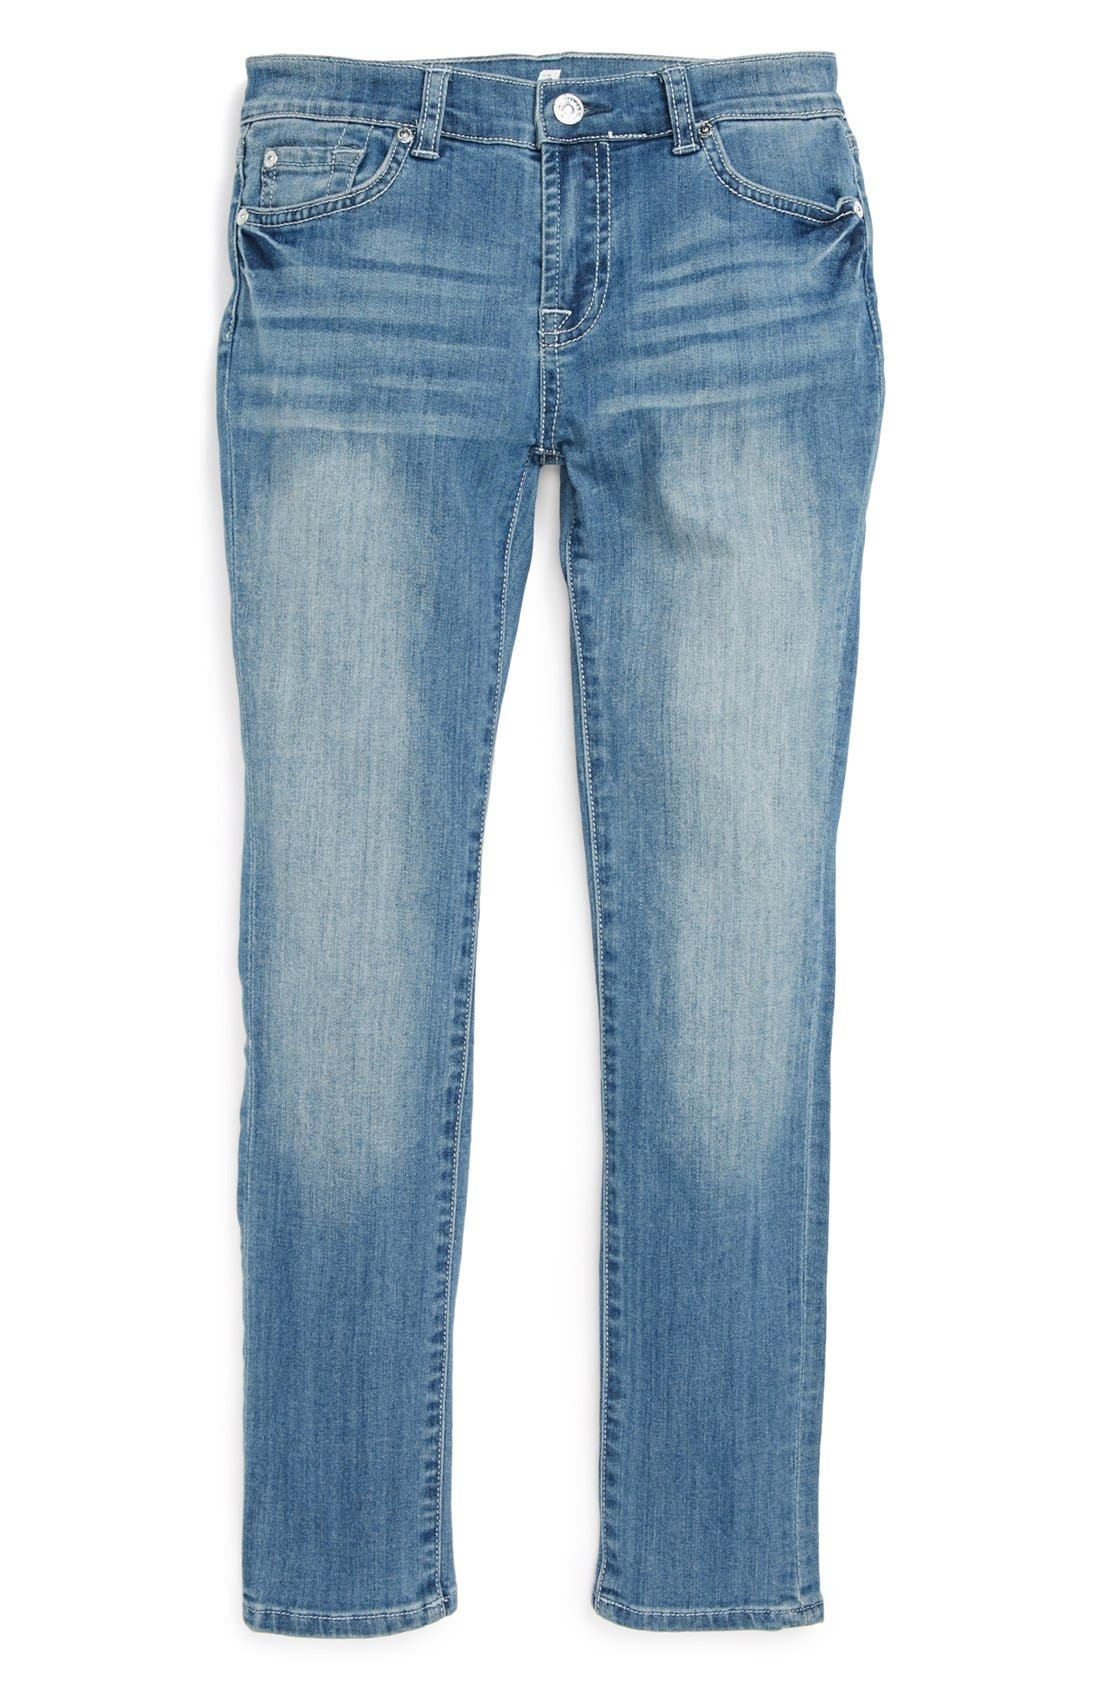 Alternate Image 2  - 7 For All Mankind® 'The Skinny' Jeans (Big Girls)